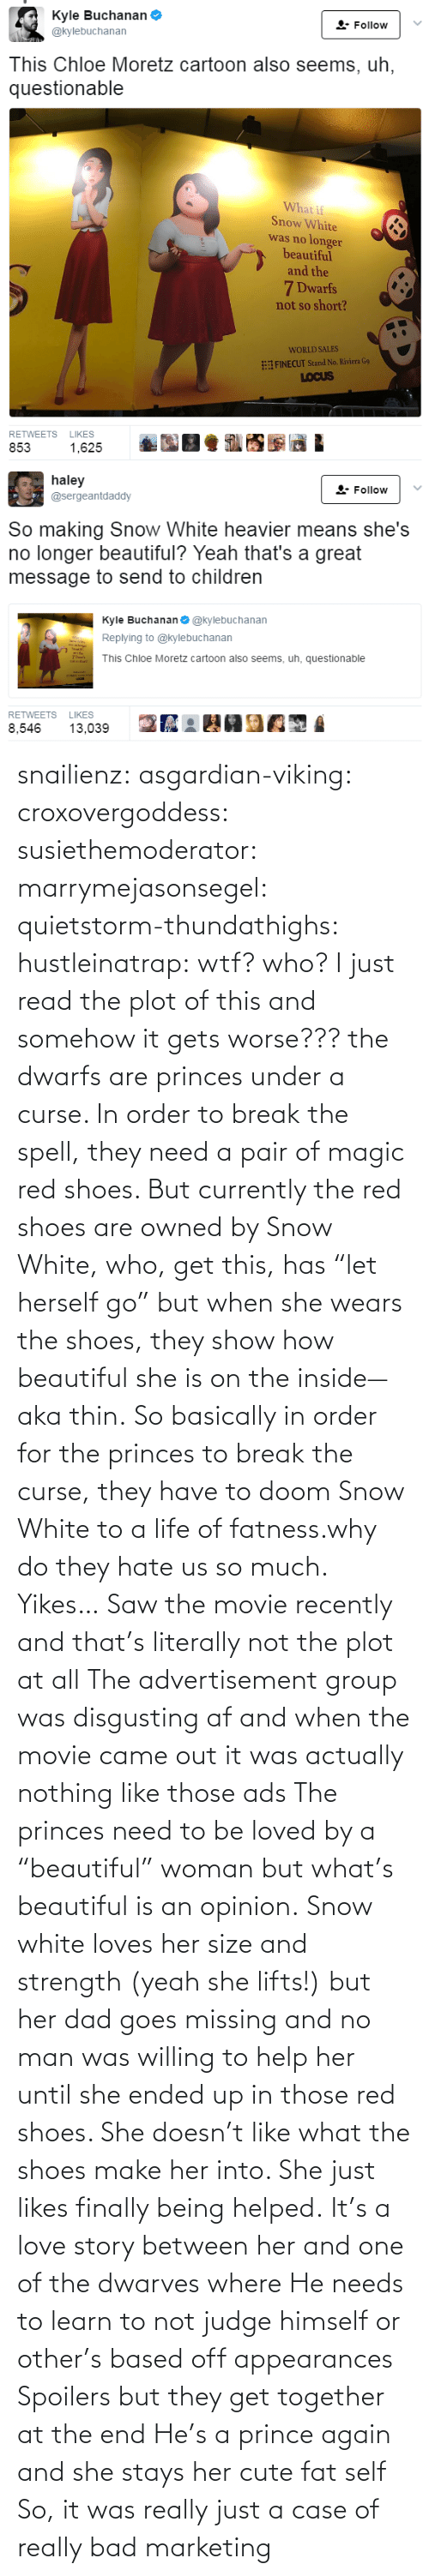 "Ended: snailienz: asgardian-viking:  croxovergoddess:  susiethemoderator:  marrymejasonsegel:   quietstorm-thundathighs:  hustleinatrap: wtf?  who?   I just read the plot of this and somehow it gets worse??? the dwarfs are princes under a curse. In order to break the spell, they need a pair of magic red shoes. But currently the red shoes are owned by Snow White, who, get this, has ""let herself go"" but when she wears the shoes, they show how beautiful she is on the inside—aka thin. So basically in order for the princes to break the curse, they have to doom Snow White to a life of fatness.why do they hate us so much.   Yikes…    Saw the movie recently and that's literally not the plot at all The advertisement group was disgusting af and when the movie came out it was actually nothing like those ads The princes need to be loved by a ""beautiful"" woman but what's beautiful is an opinion. Snow white loves her size and strength (yeah she lifts!) but her dad goes missing and no man was willing to help her until she ended up in those red shoes. She doesn't like what the shoes make her into. She just likes finally being helped. It's a love story between her and one of the dwarves where He needs to learn to not judge himself or other's based off appearances  Spoilers but they get together at the end He's a prince again and she stays her cute fat self  So, it was really just a case of really bad marketing"